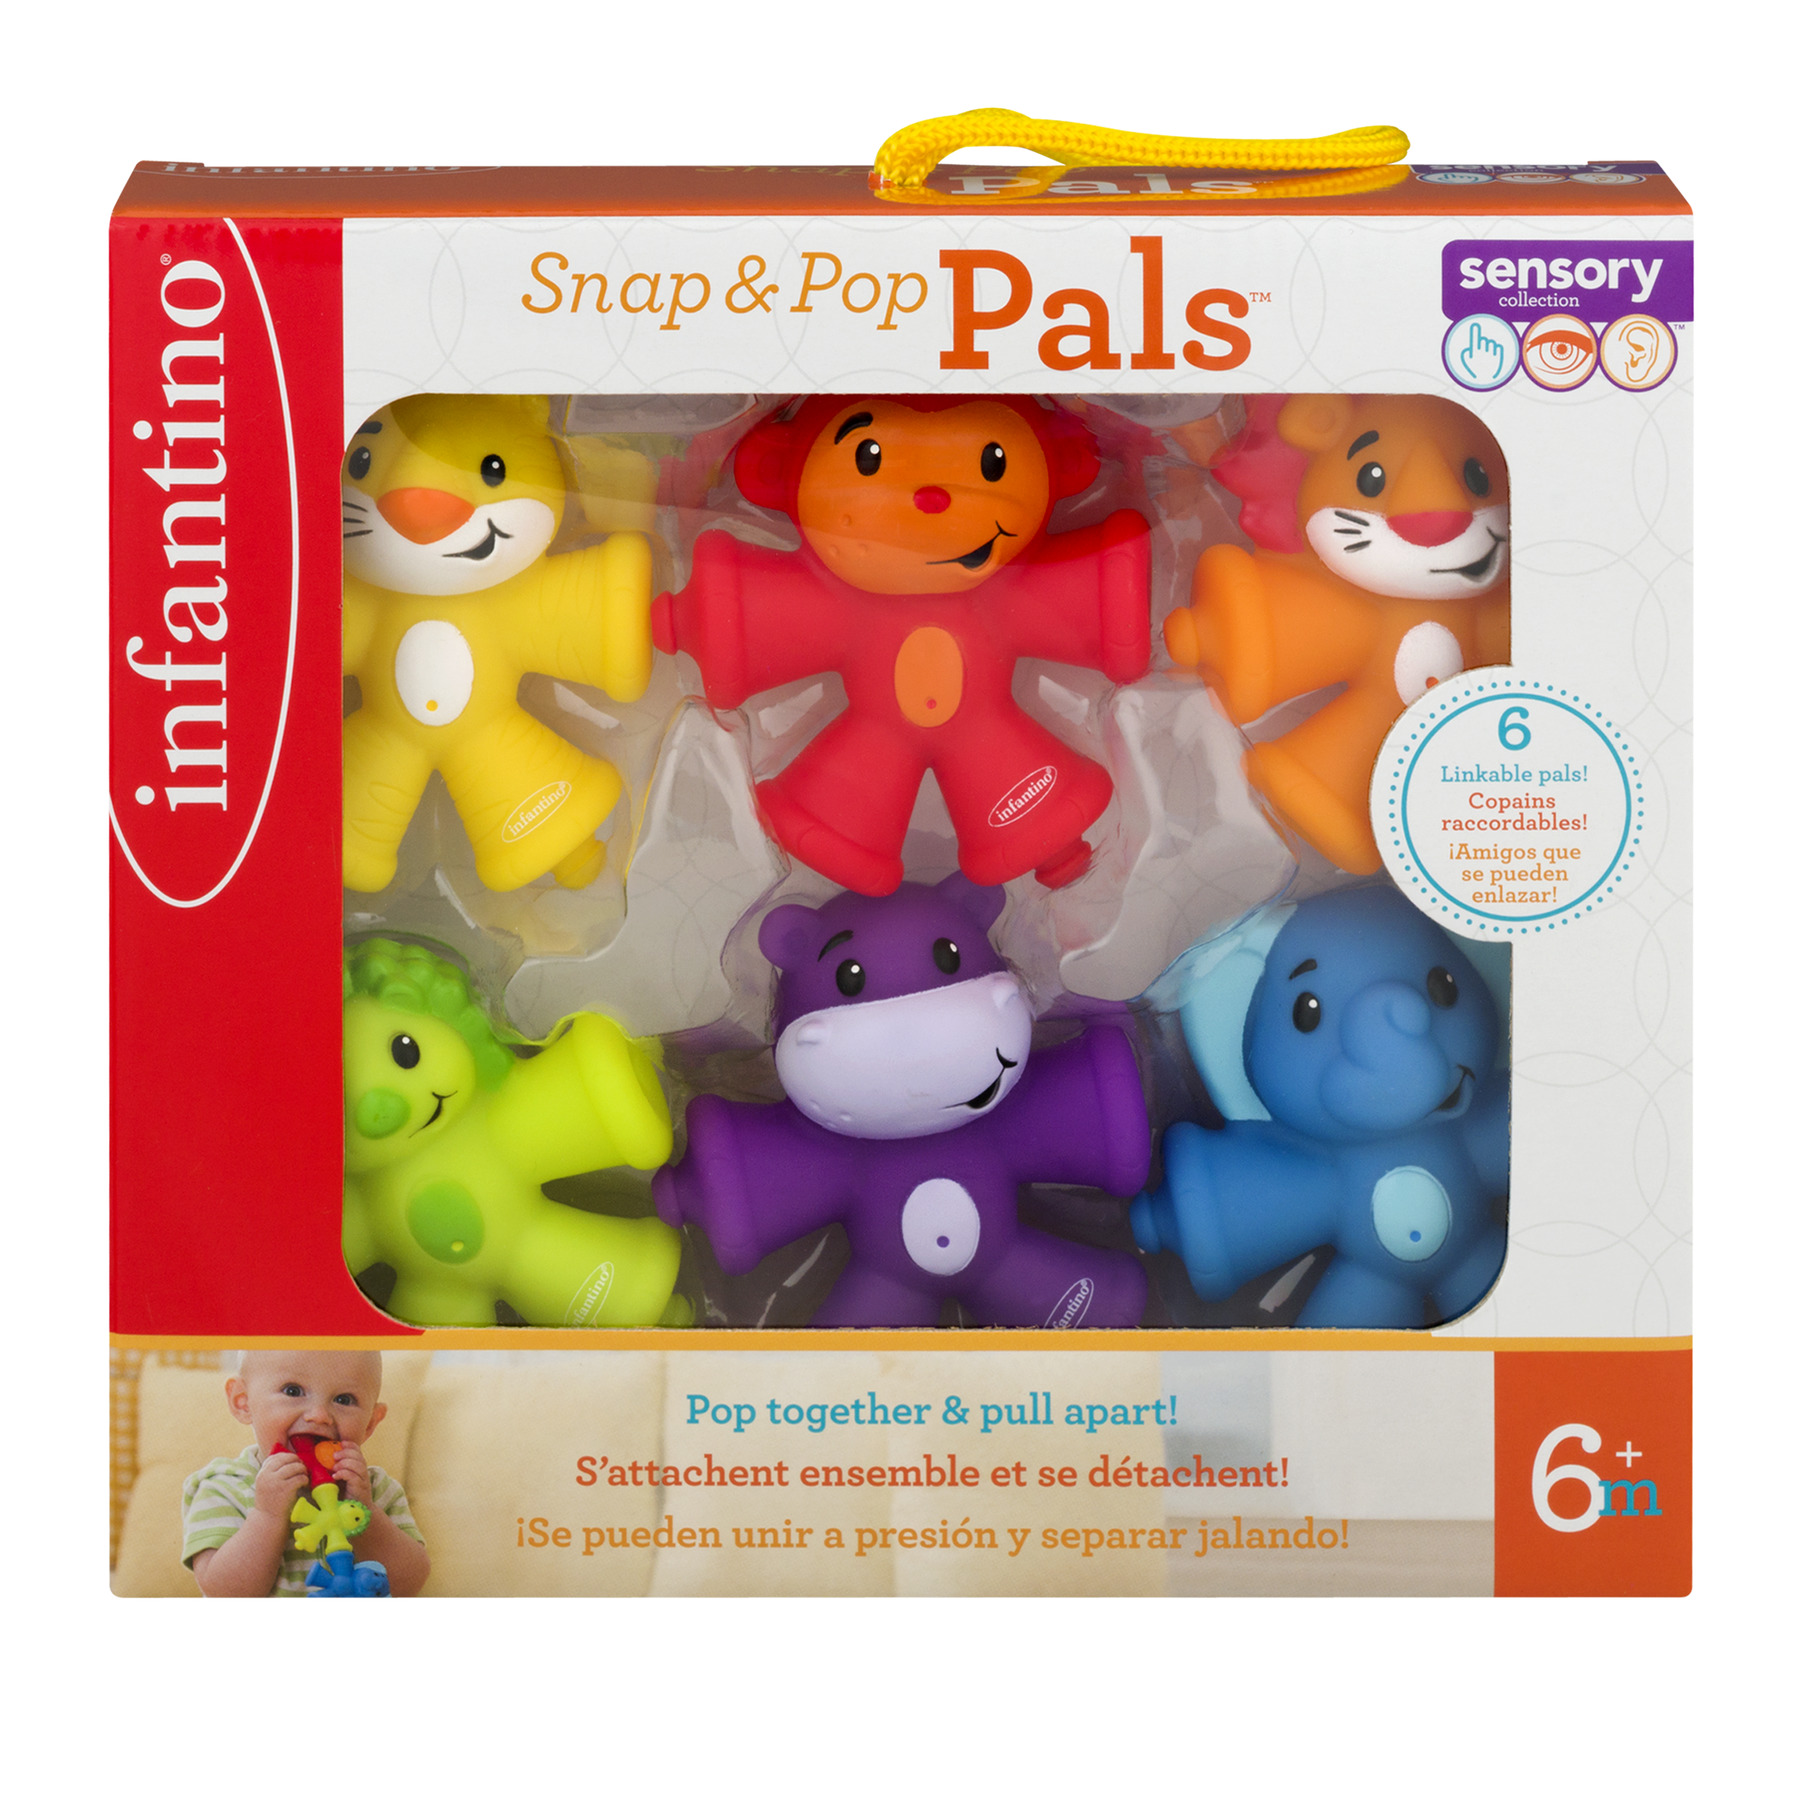 Infantino Snap & Pop Pals 6+m 6 CT6.0 CT by Infantino